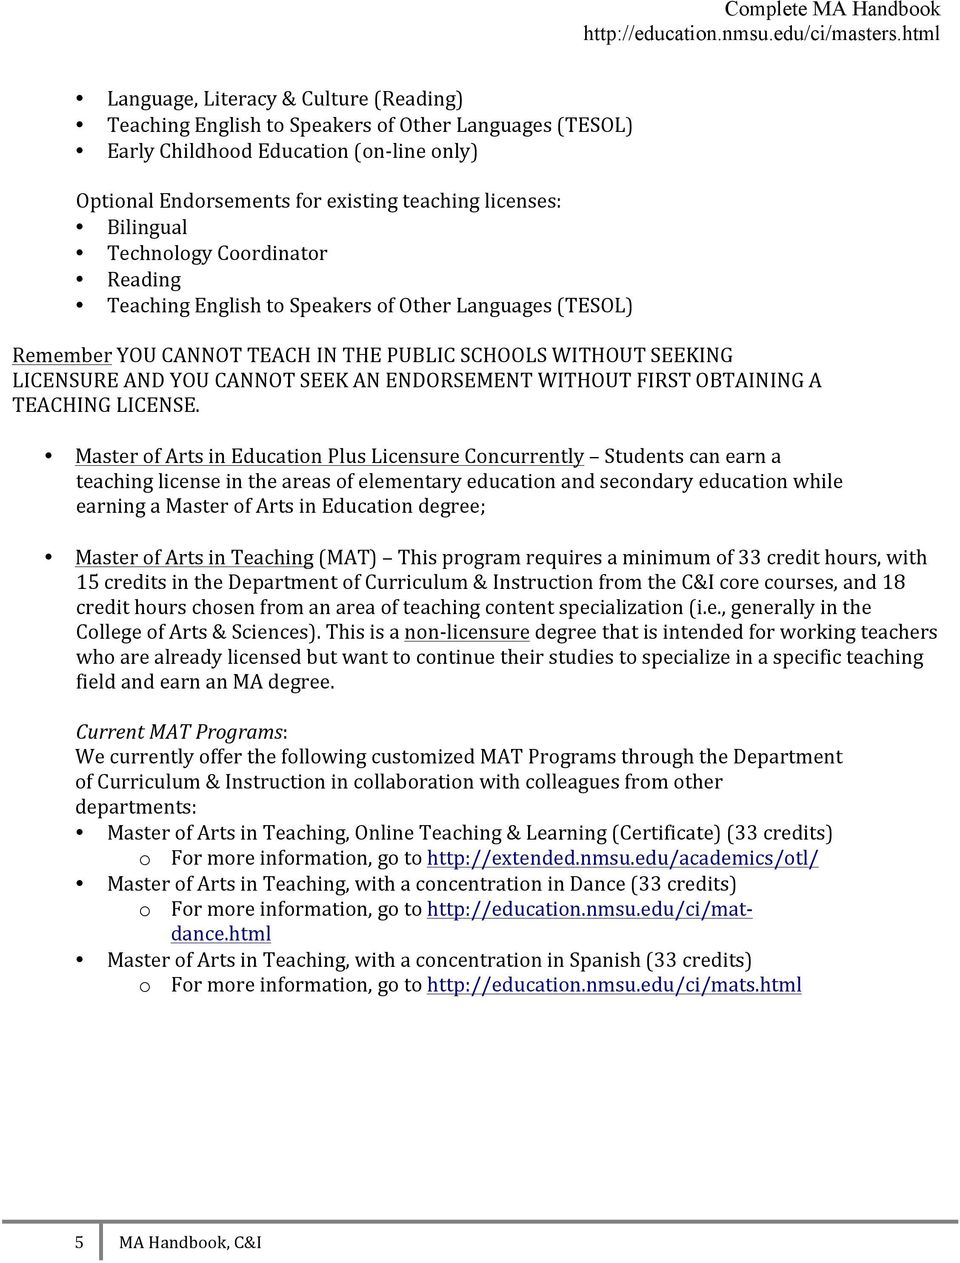 Ma Handbook Master S Degree Programs In The Department Of Curriculum